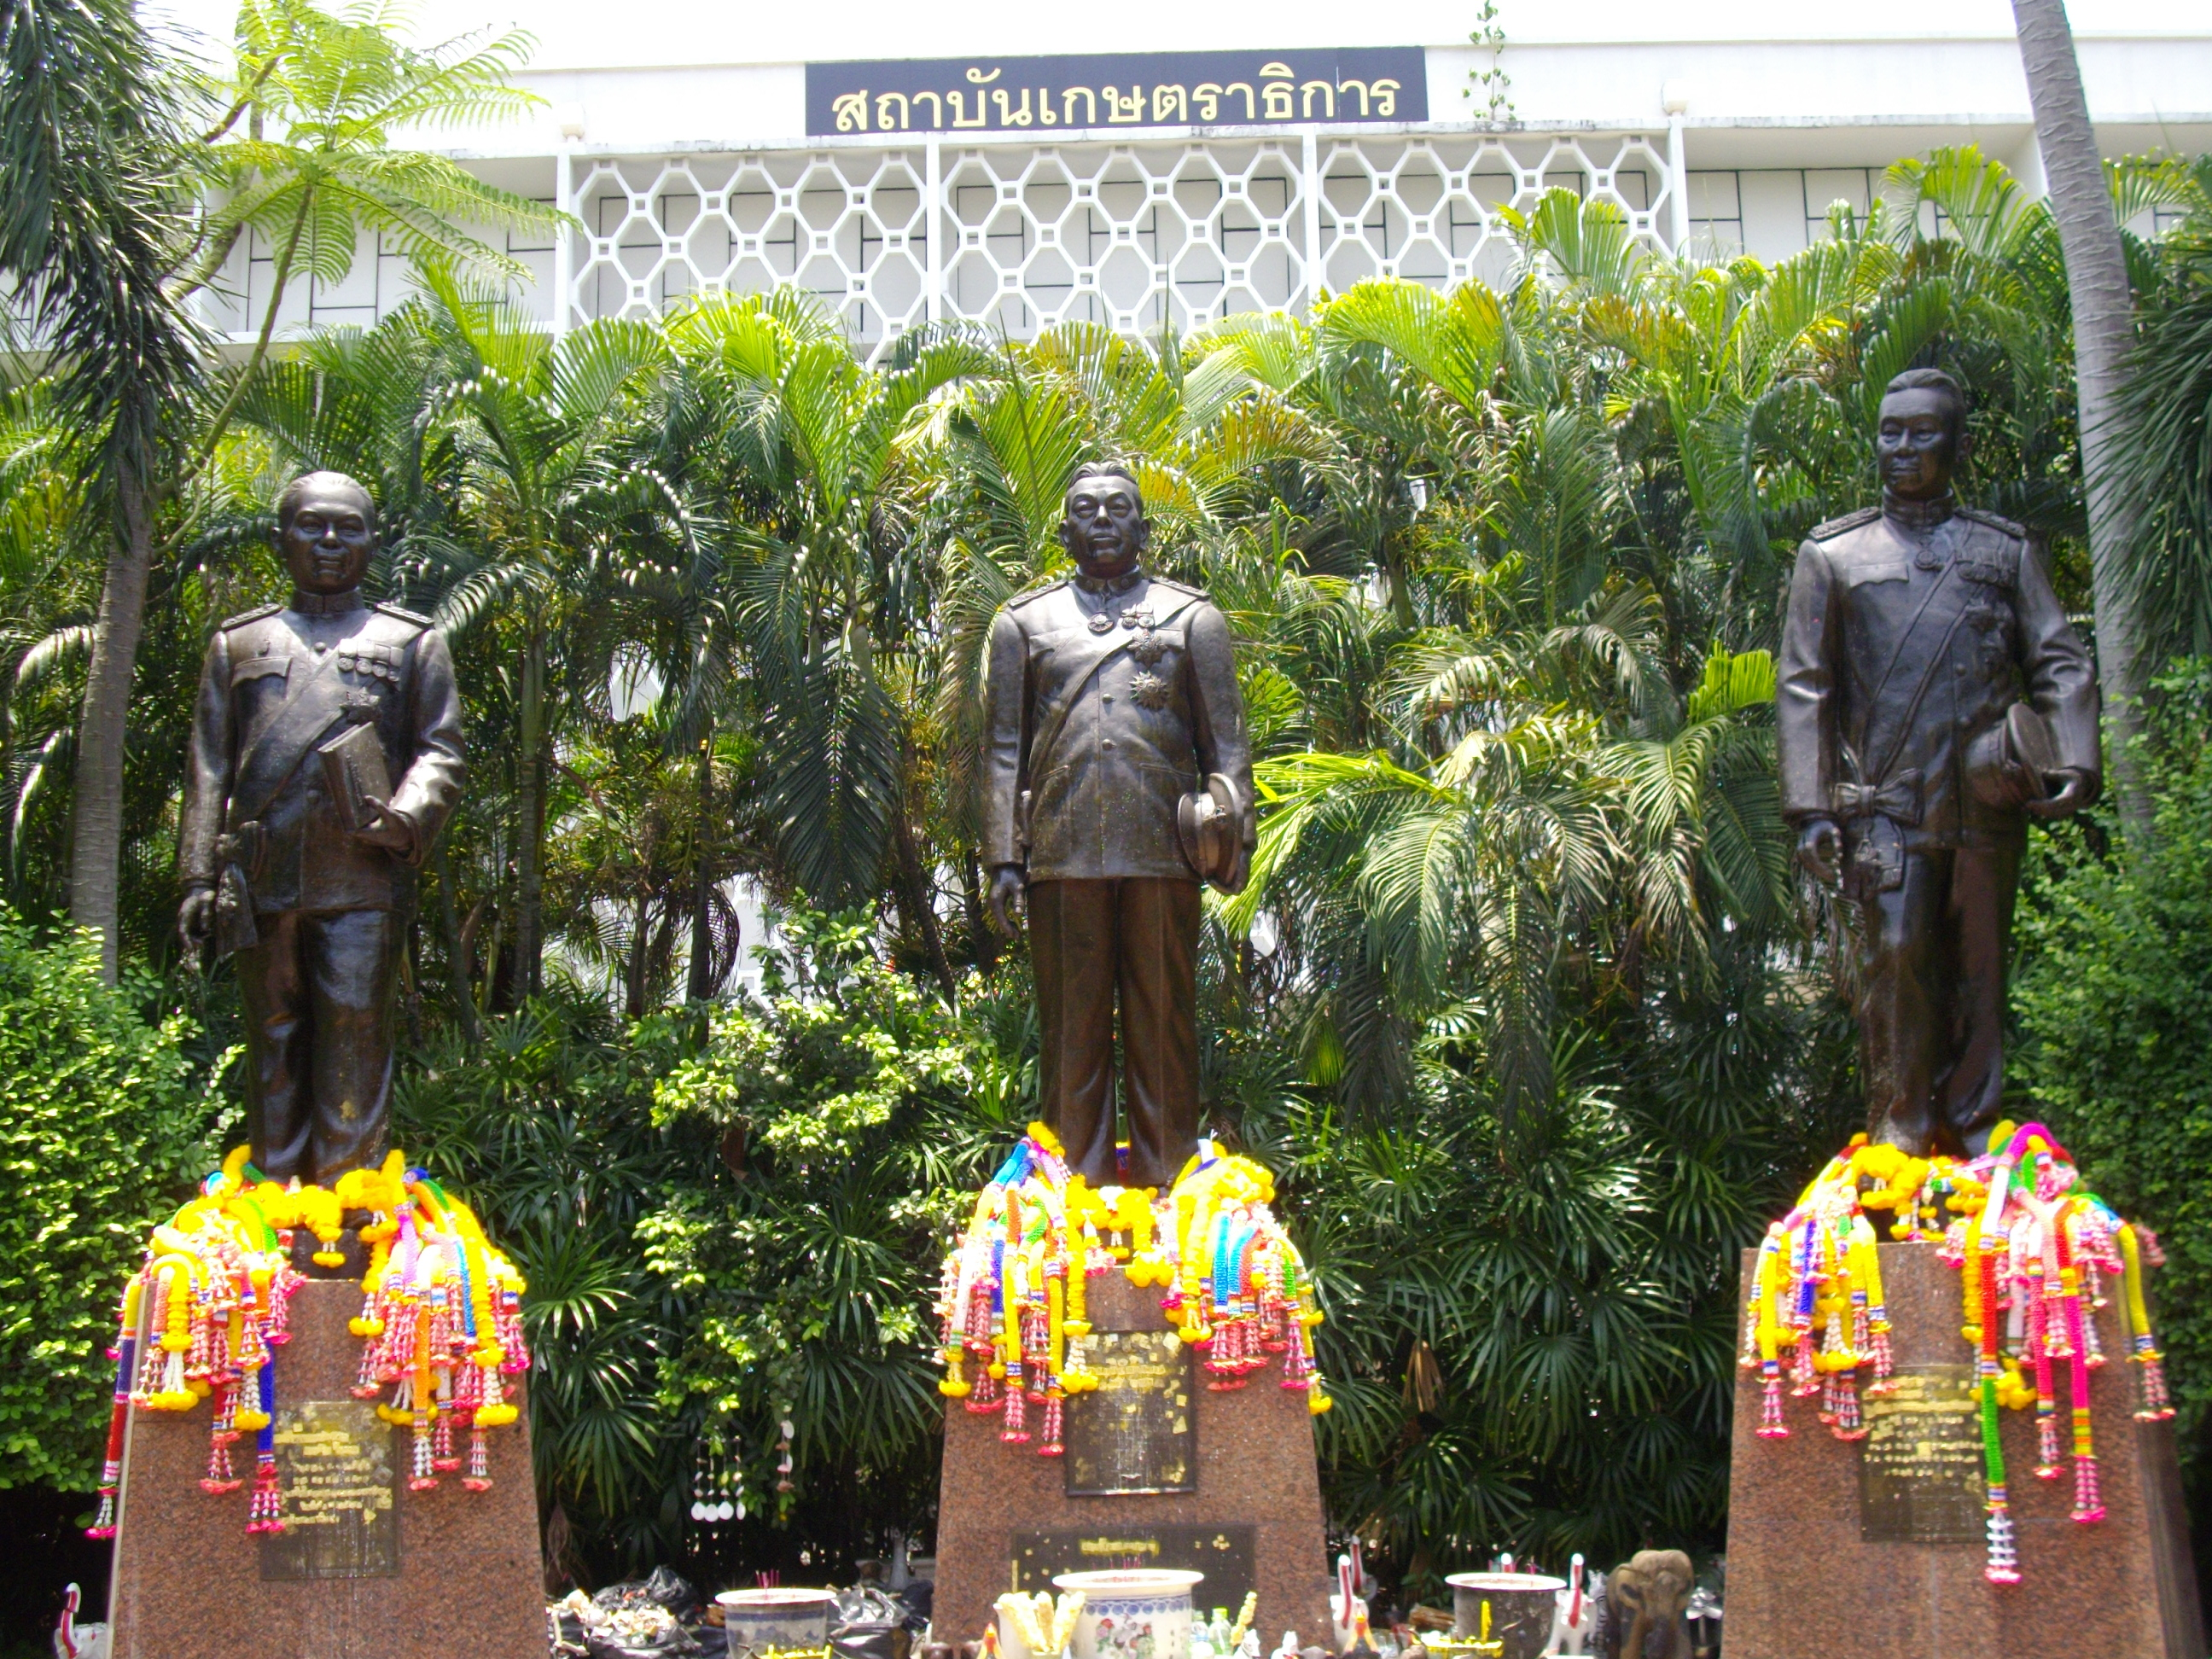 Monuments of the Three Masters of Kasetsart University, from left, Phra Chuangkasetsilapakan (พระช่วงเกษตรศิลปการ), Luang Suvarnavachakakasikij (หลวงสุวรรณวาจกกสิกิจ), Luang Ingasrikasikan (หลวงอิงคศรีกสิการ). These statues are situated in front of Kasetrathikarn Institute, inside Kasetsart University, Bangkok, Thailand. Photo taken on April 24, 2009.